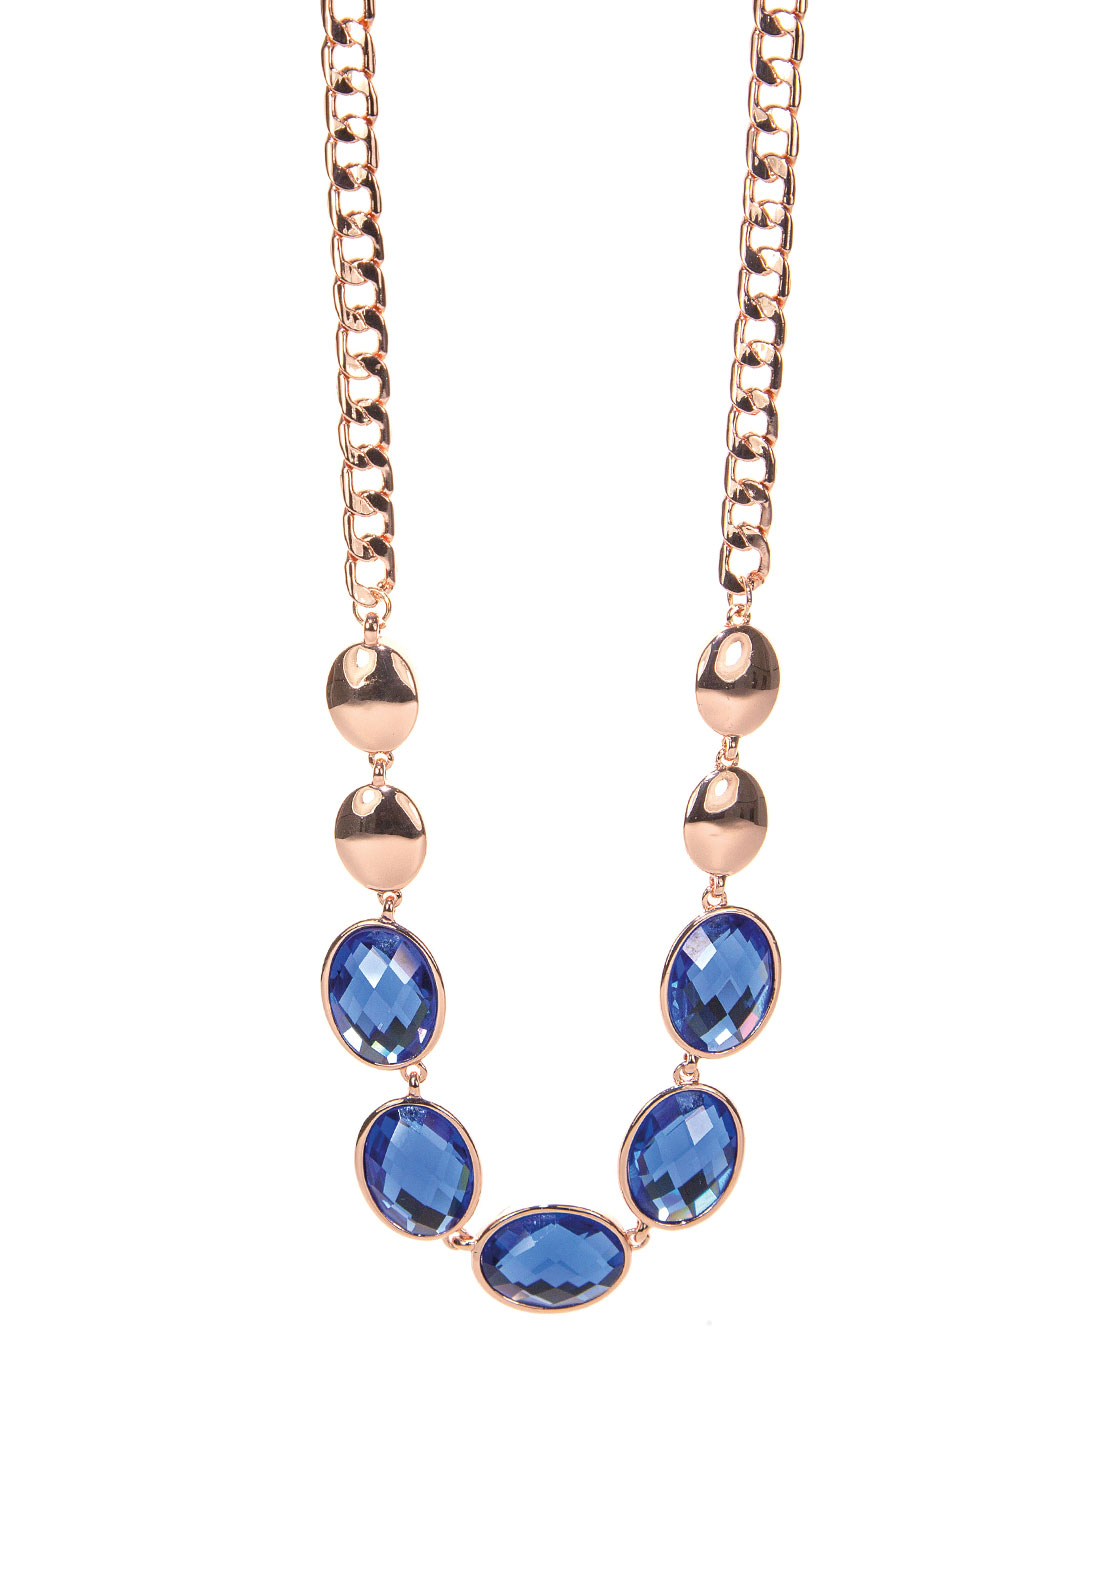 Absolute Jewellery Blue Stone Necklace